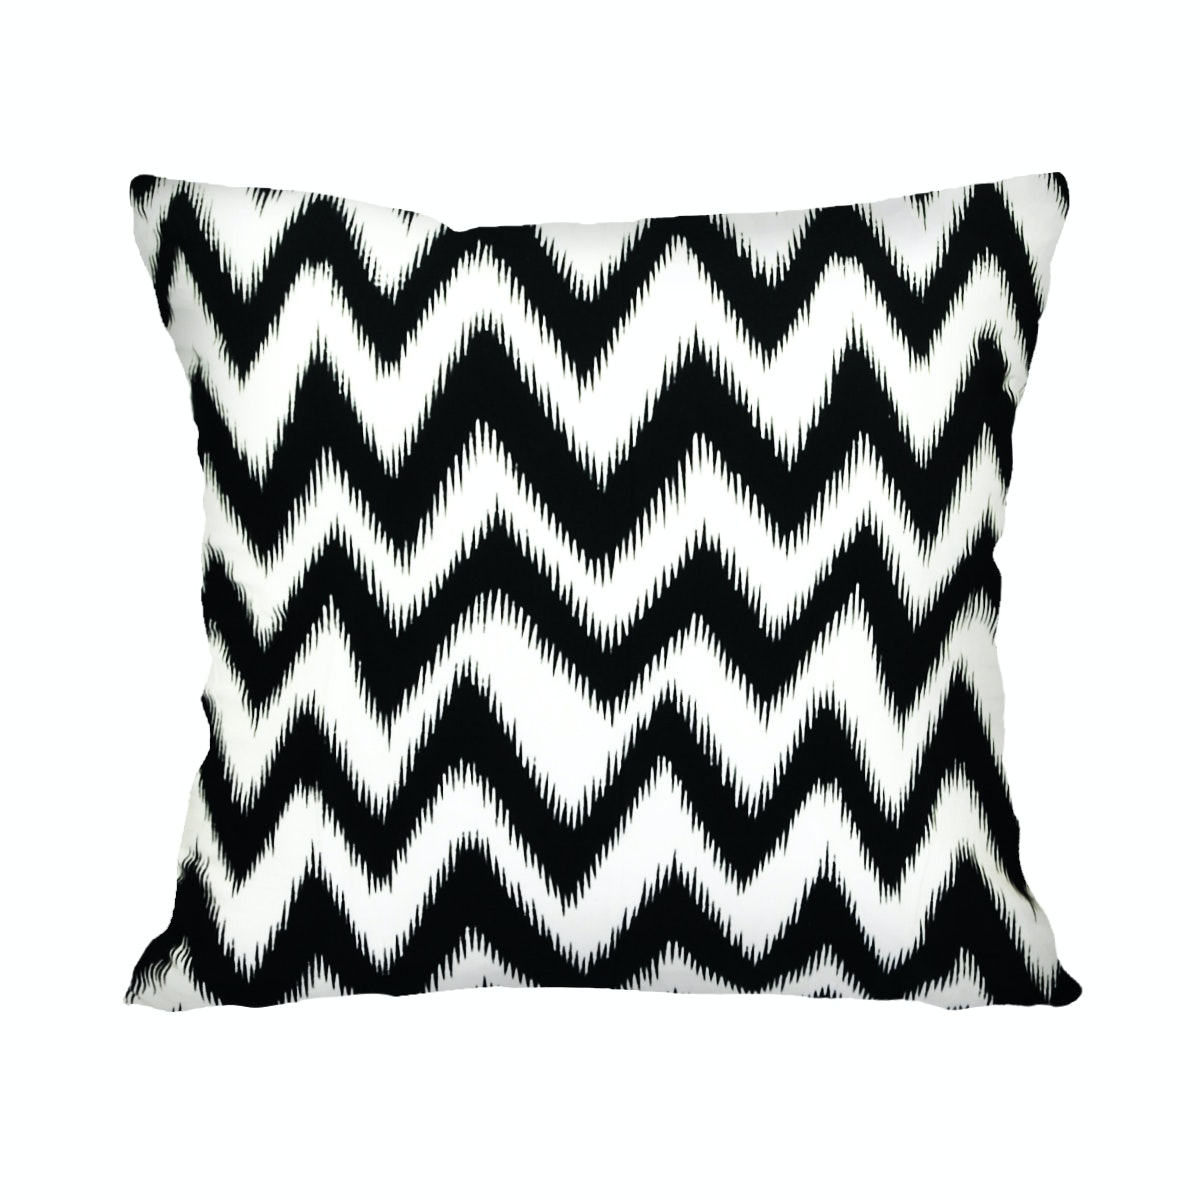 Stiletto In Style Cushion Cover / Sarung Bantal Monokrom - Bw Rangrang